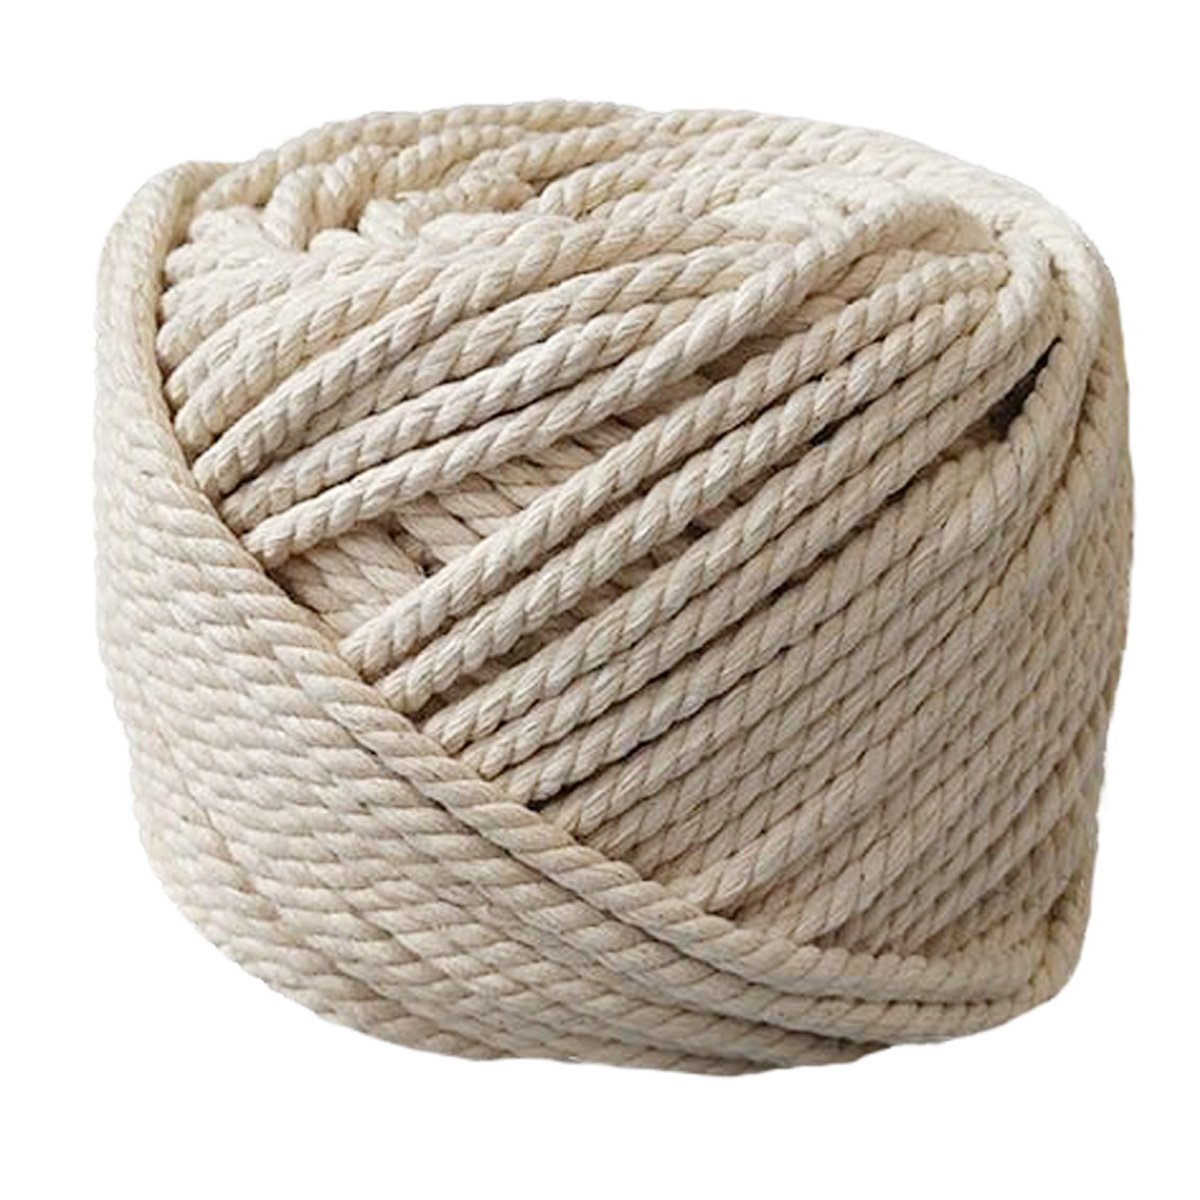 PYJTRL 100% Natural Cotton Twisted Rope 1/12'', 1/8'', 1/6'',1/5'' (6mm(1/4Inch x 165Feet)) by PYJTRL